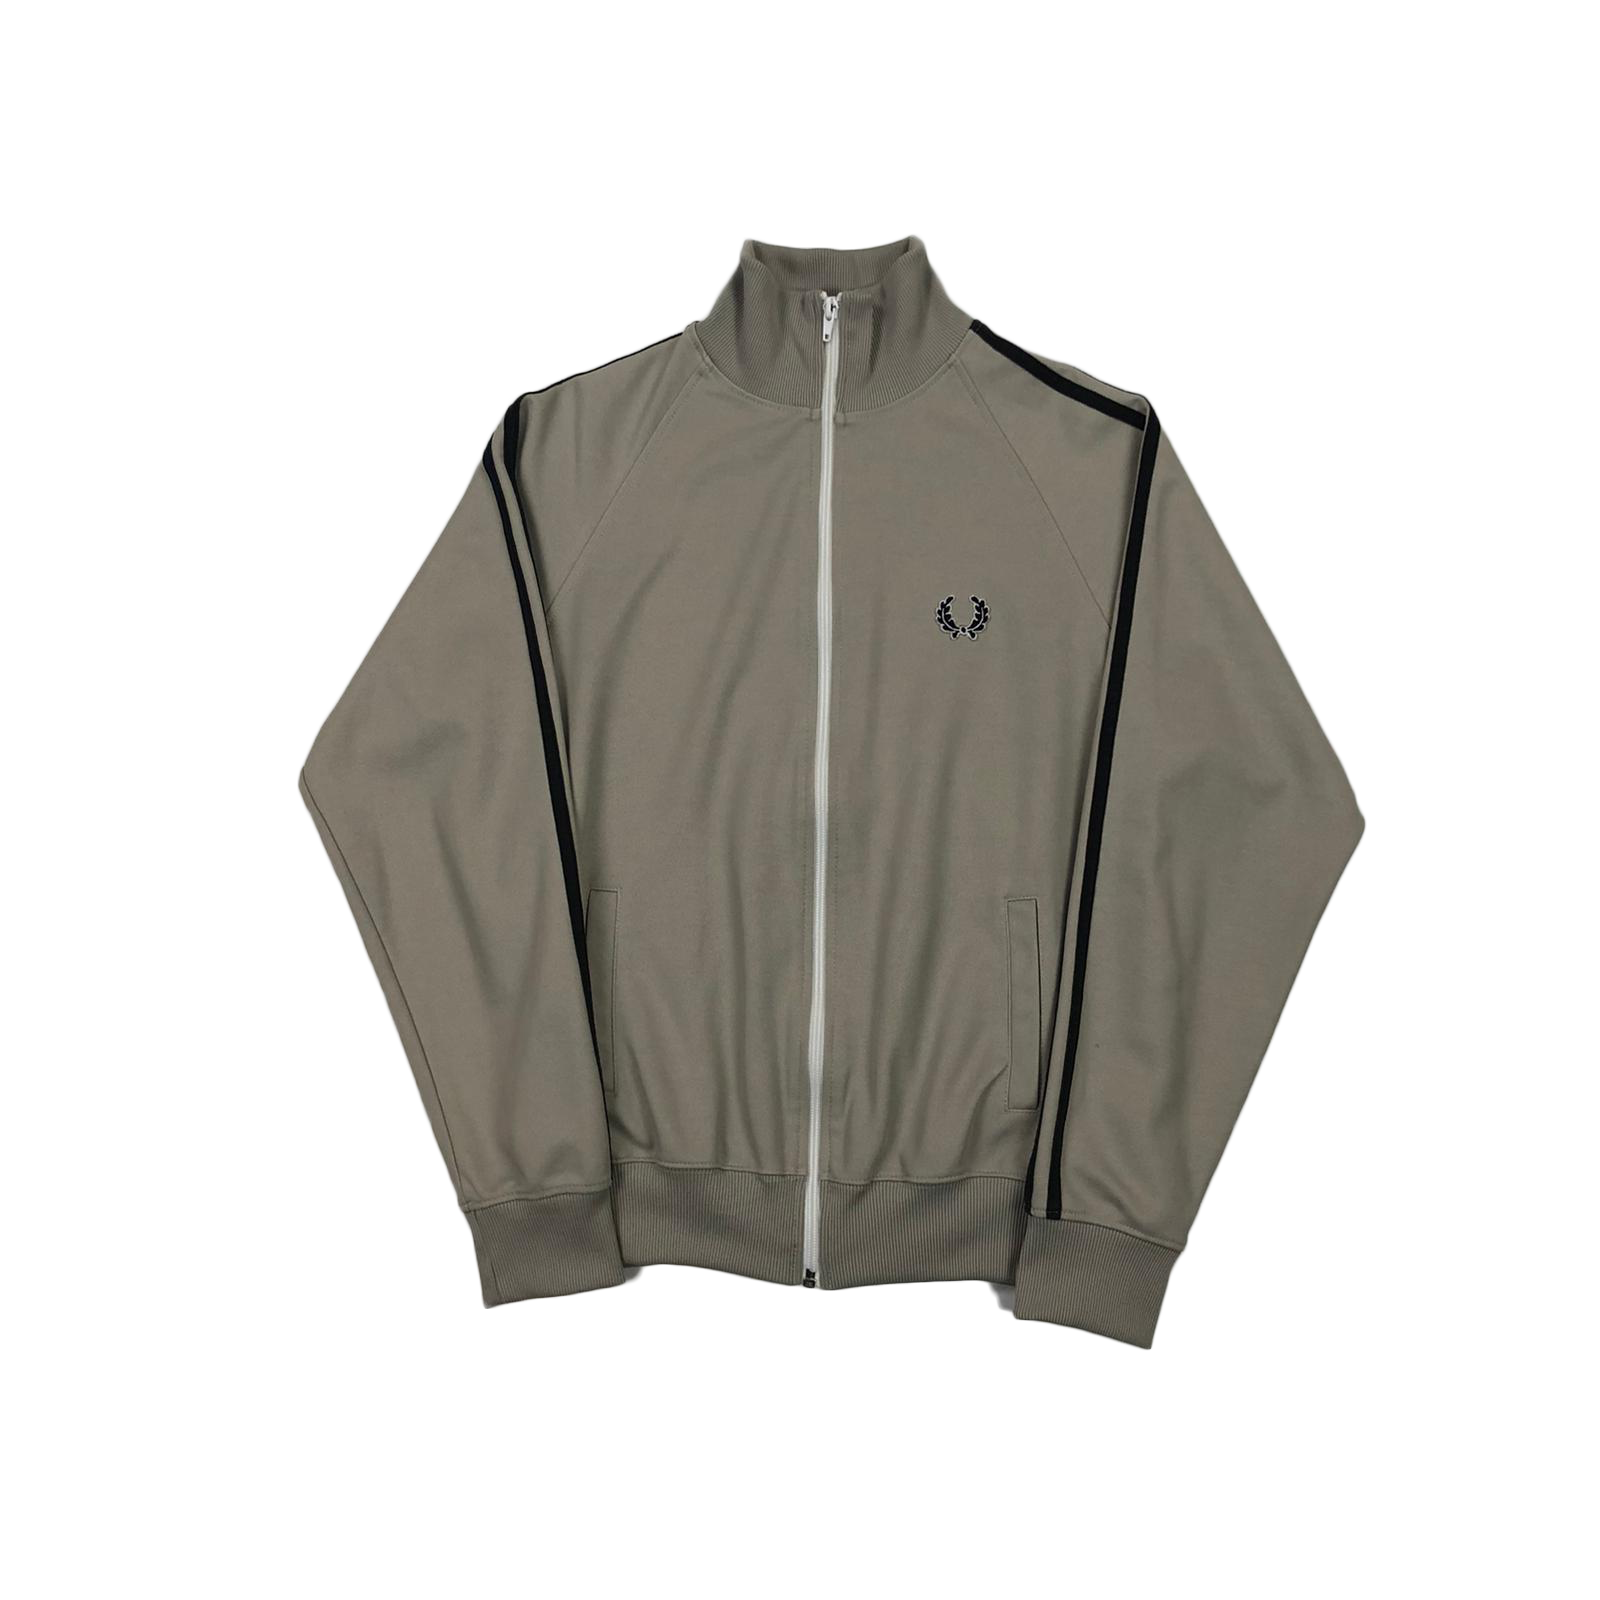 Fred Perry track jacket